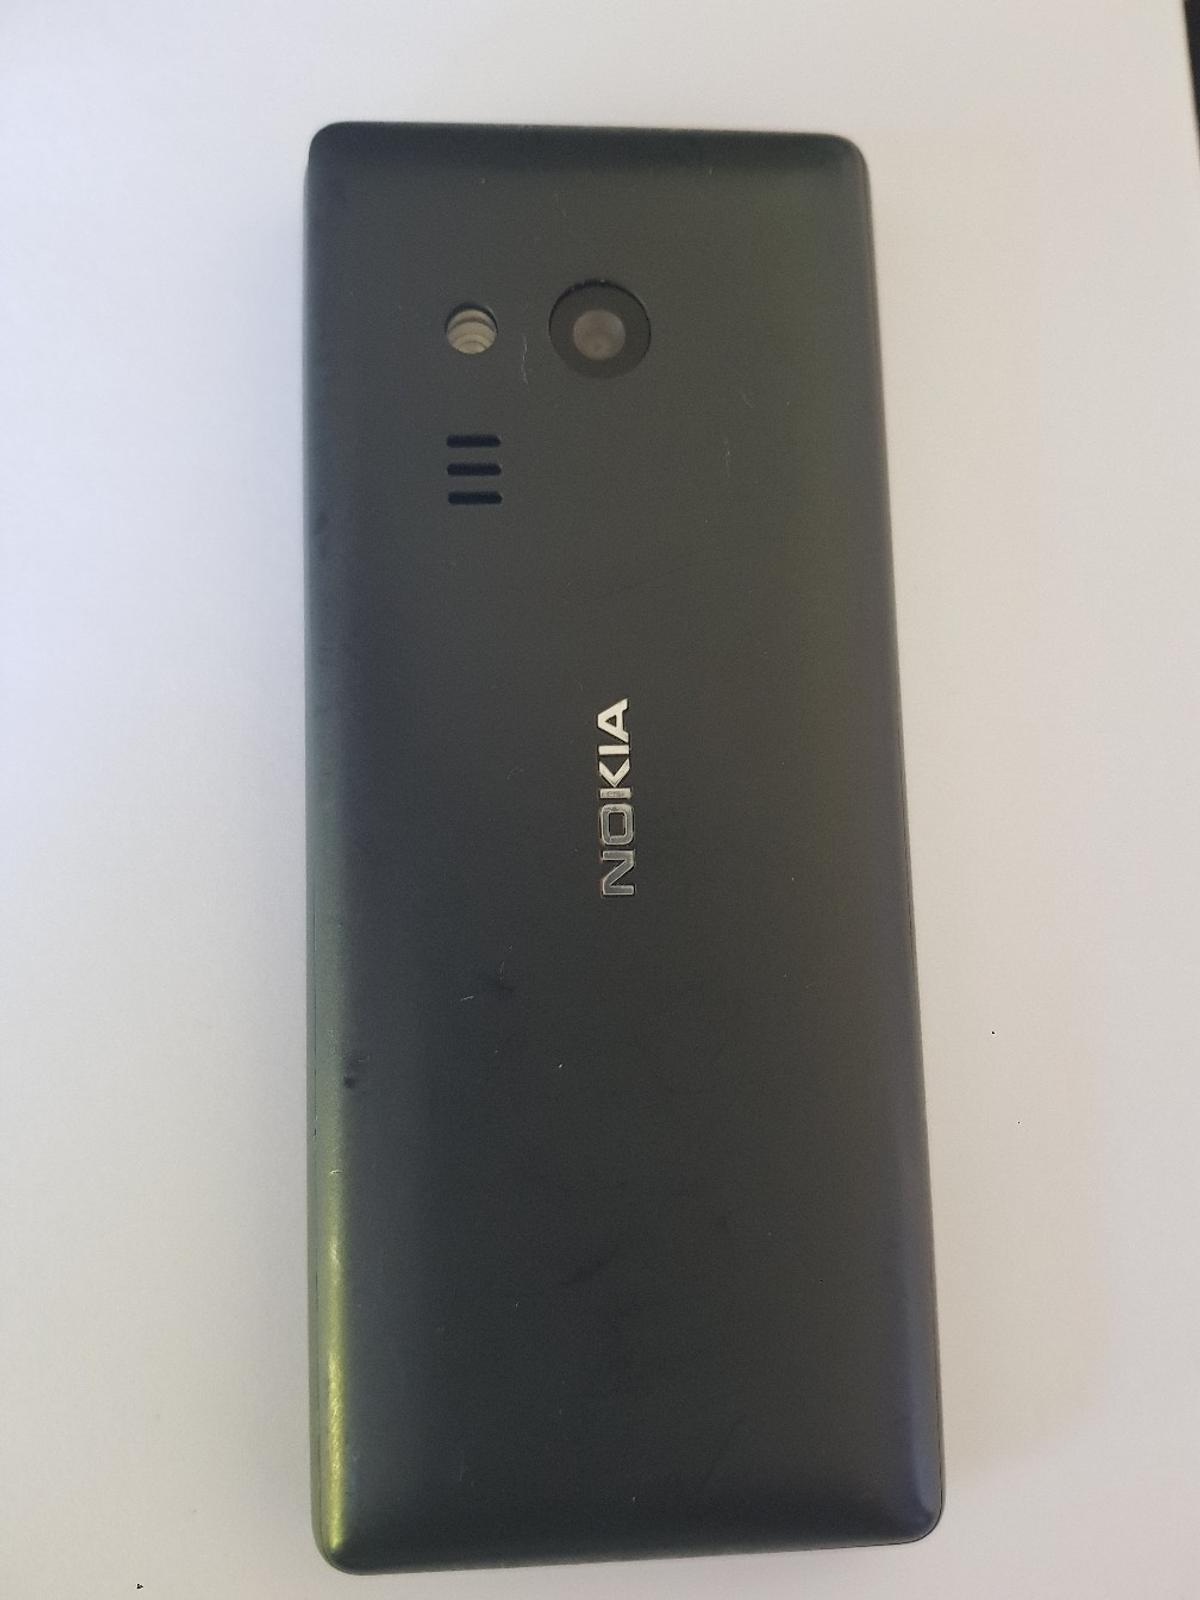 I buy this phone last year in September and I use it 3 or 4 times a months just for international calls , it is in perfect condition and have some signs here and there